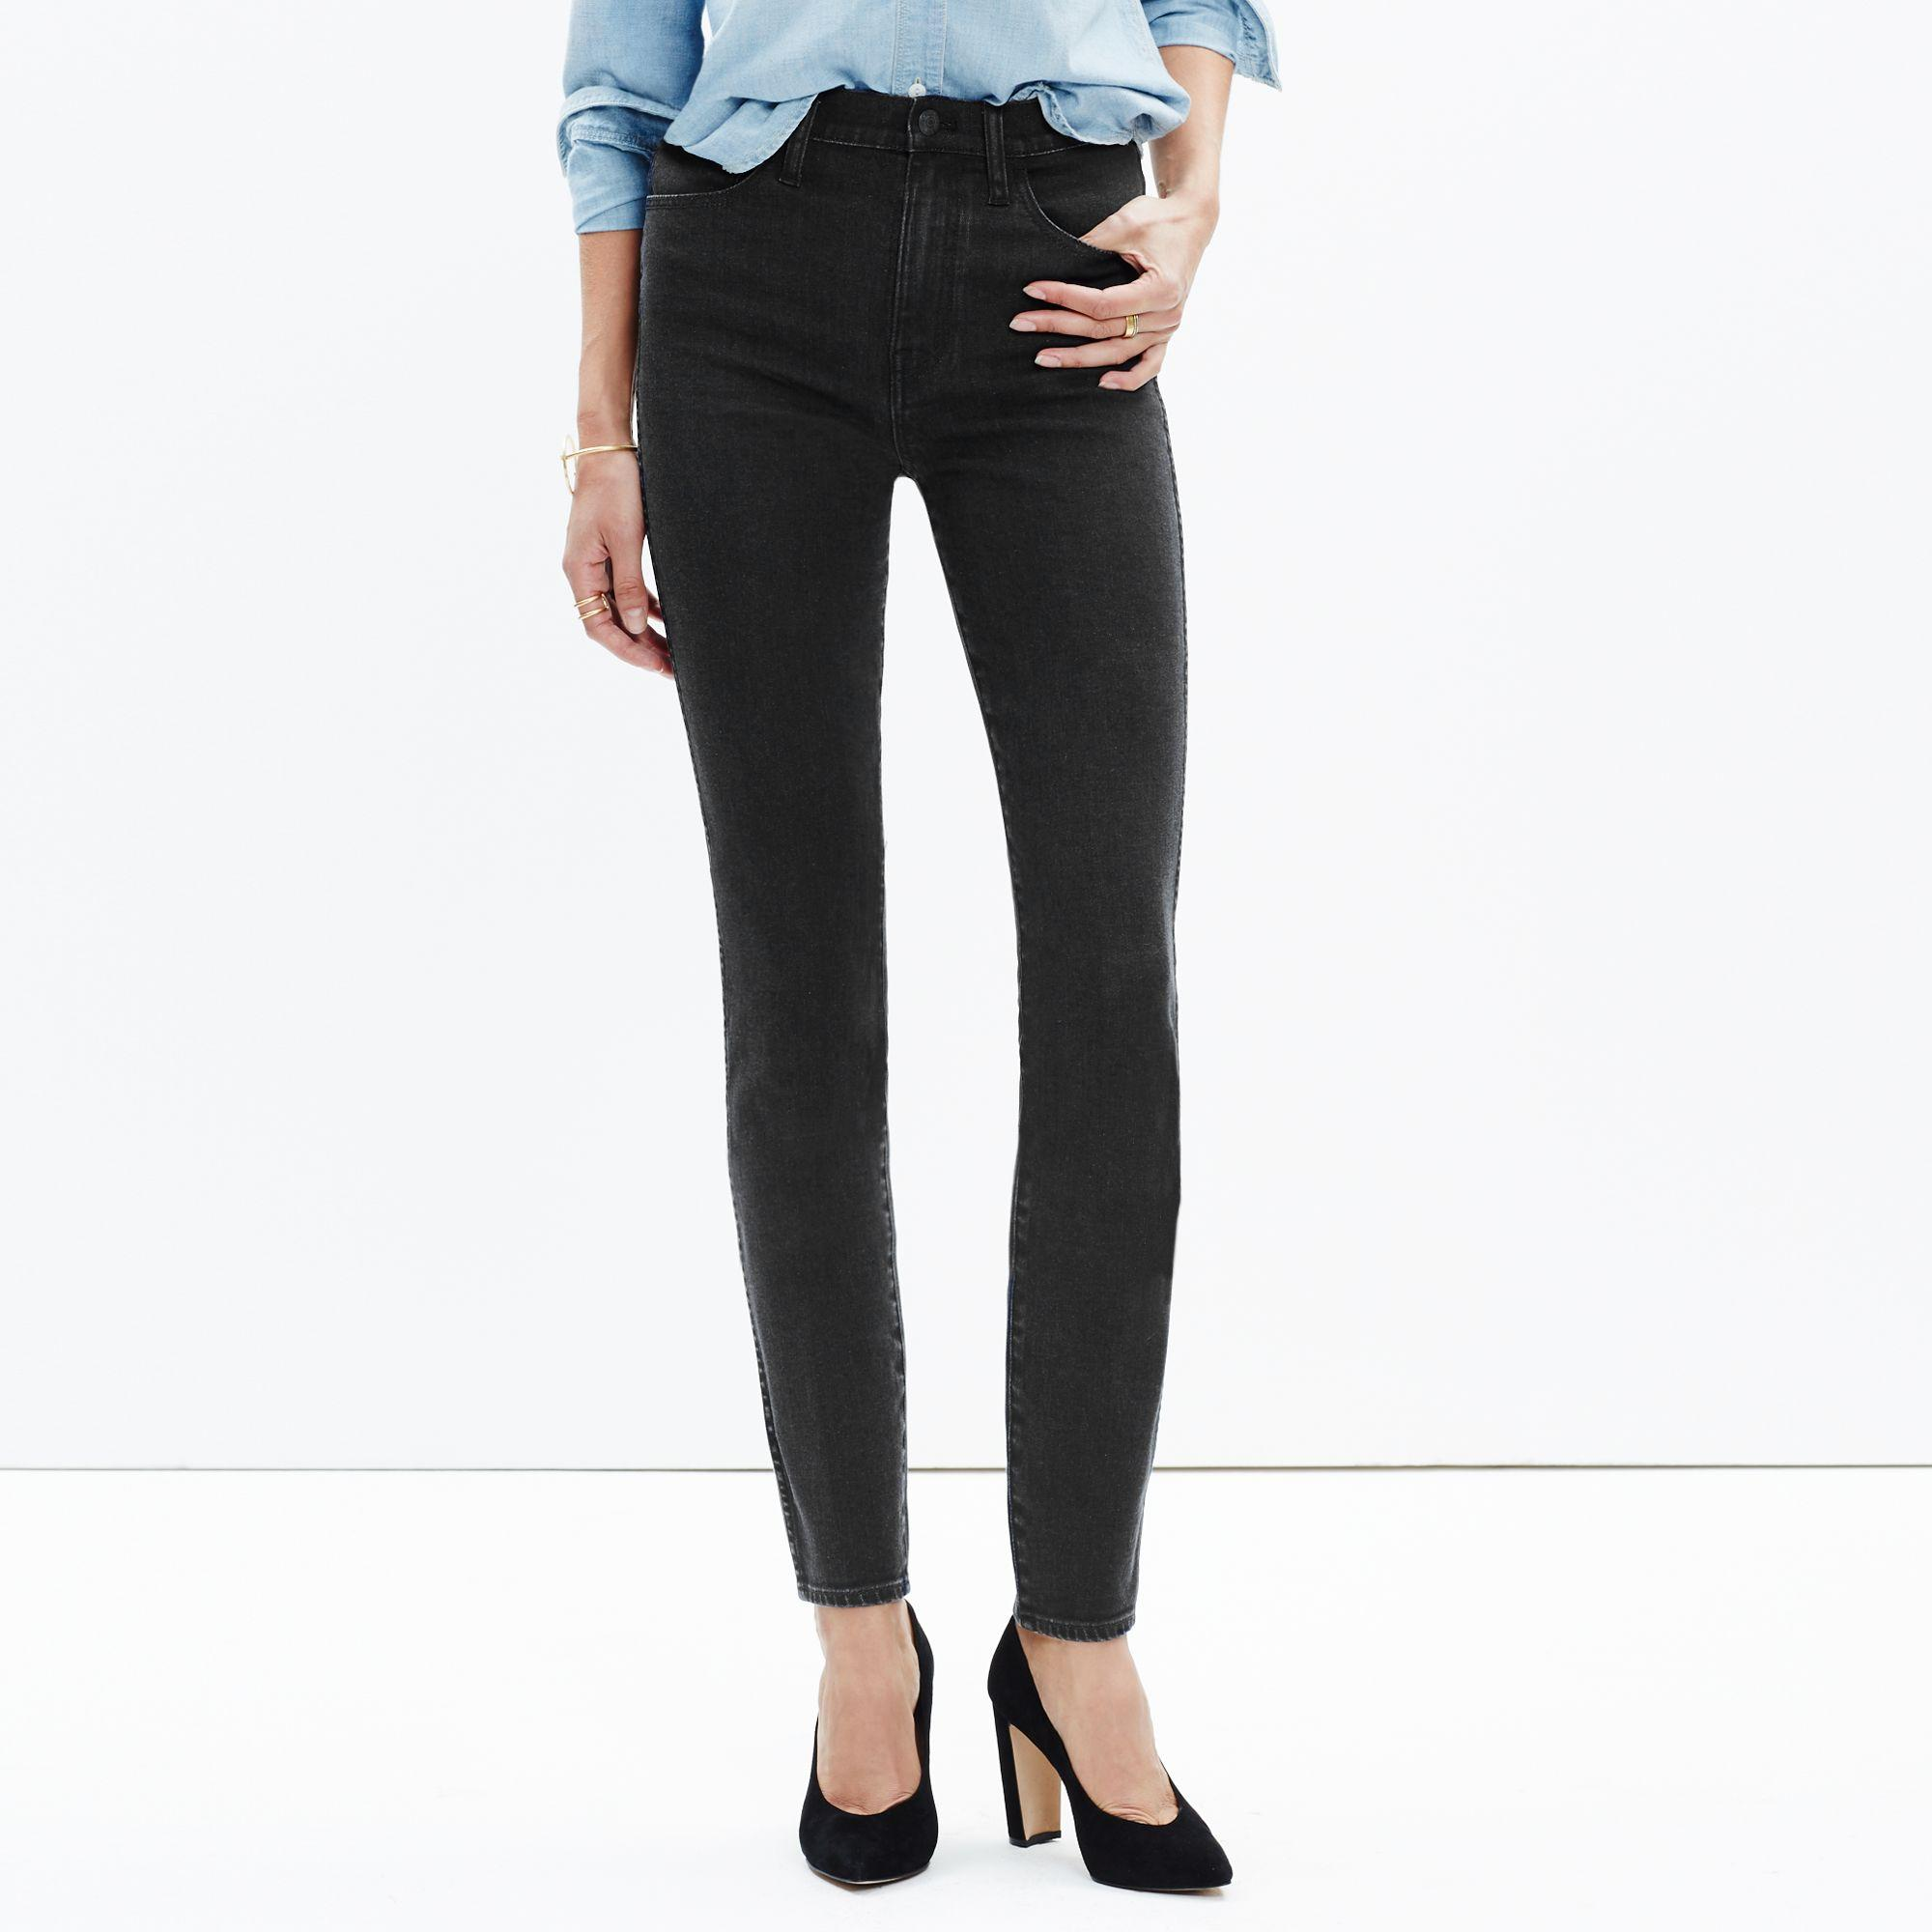 "Madewell Denim Tall 10"" High-rise Skinny Jeans In Captain Wash in Black"